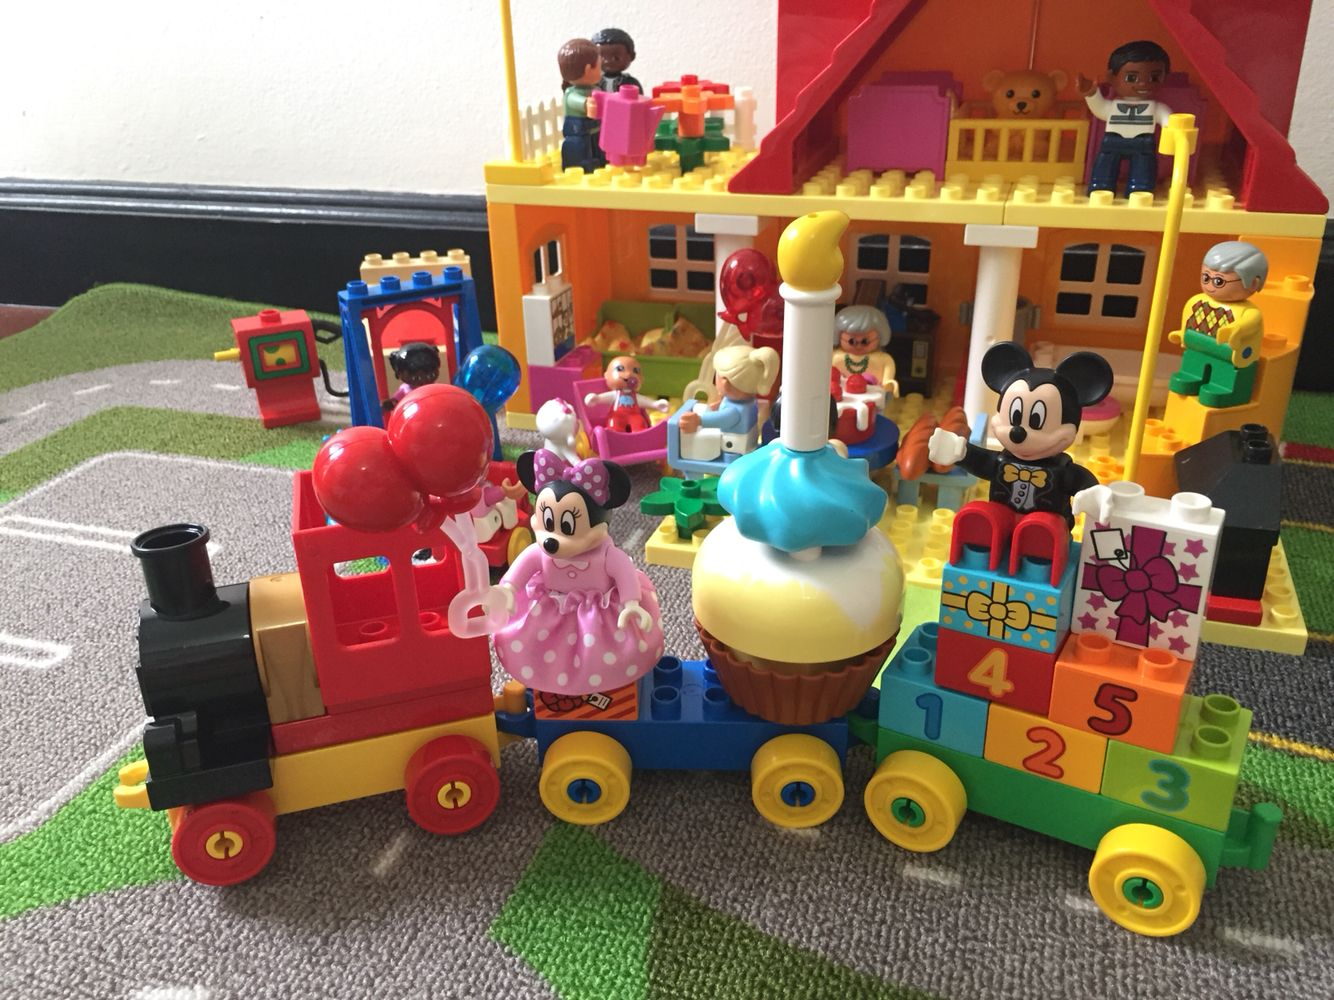 Lego Duplo L Disney Mickey Mouse Clubhouse Minnie S Caf 10830 Large Building Block Preschool Toy Find Out More Minnie Mouse Toys Lego Duplo Preschool Toys